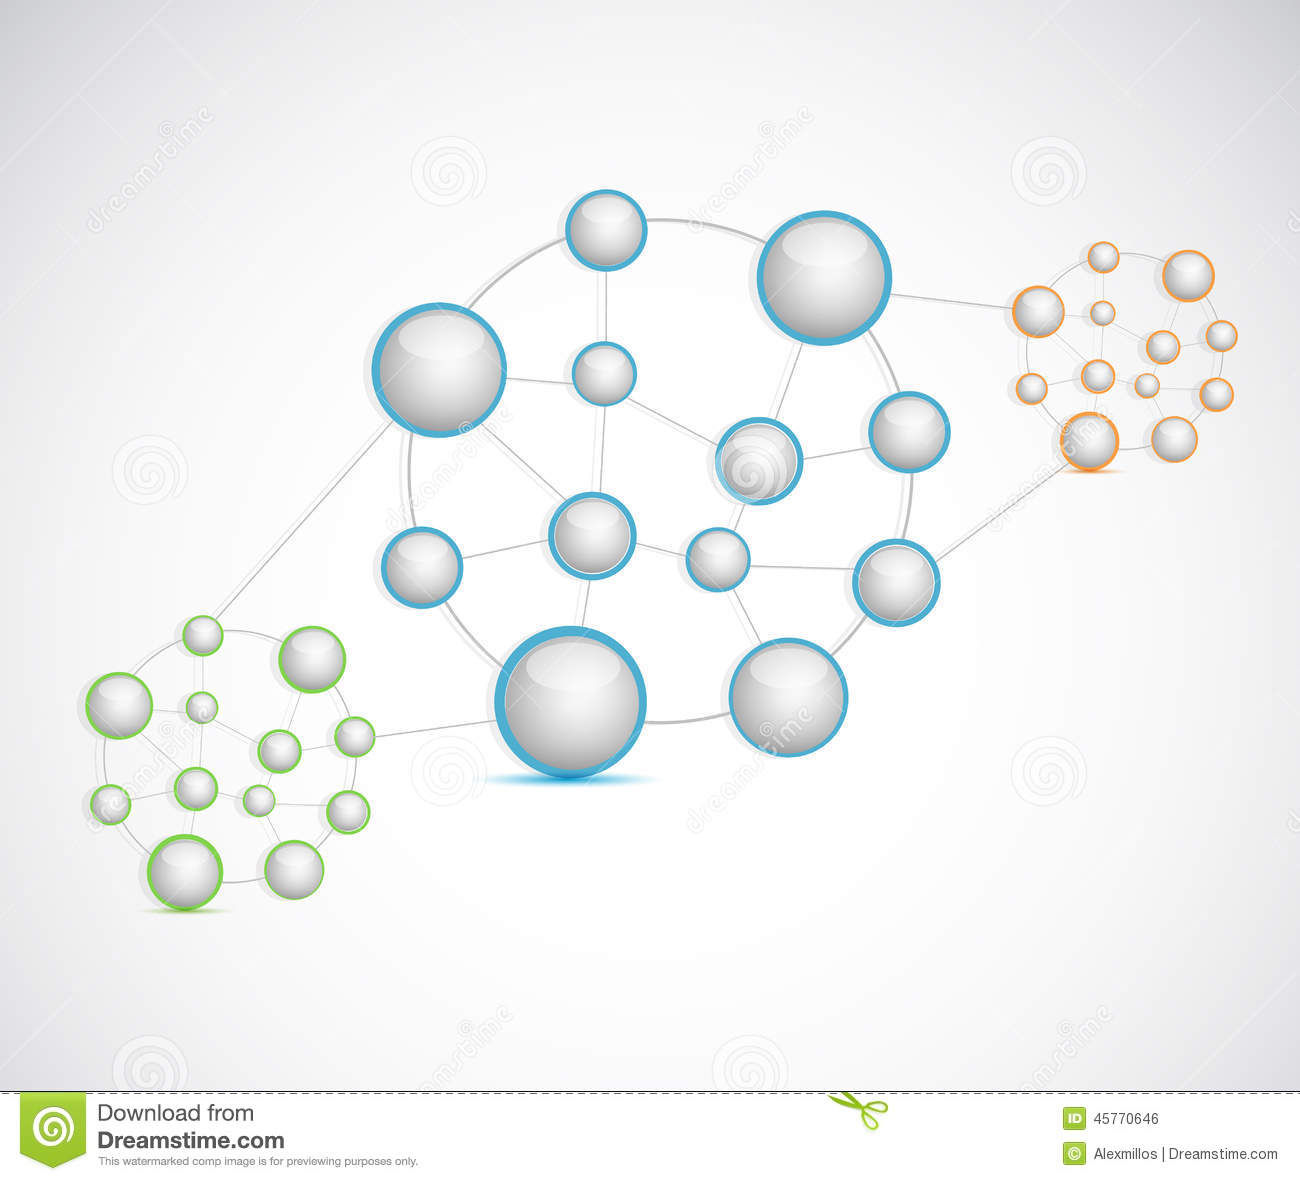 hight resolution of sphere network diagram illustration